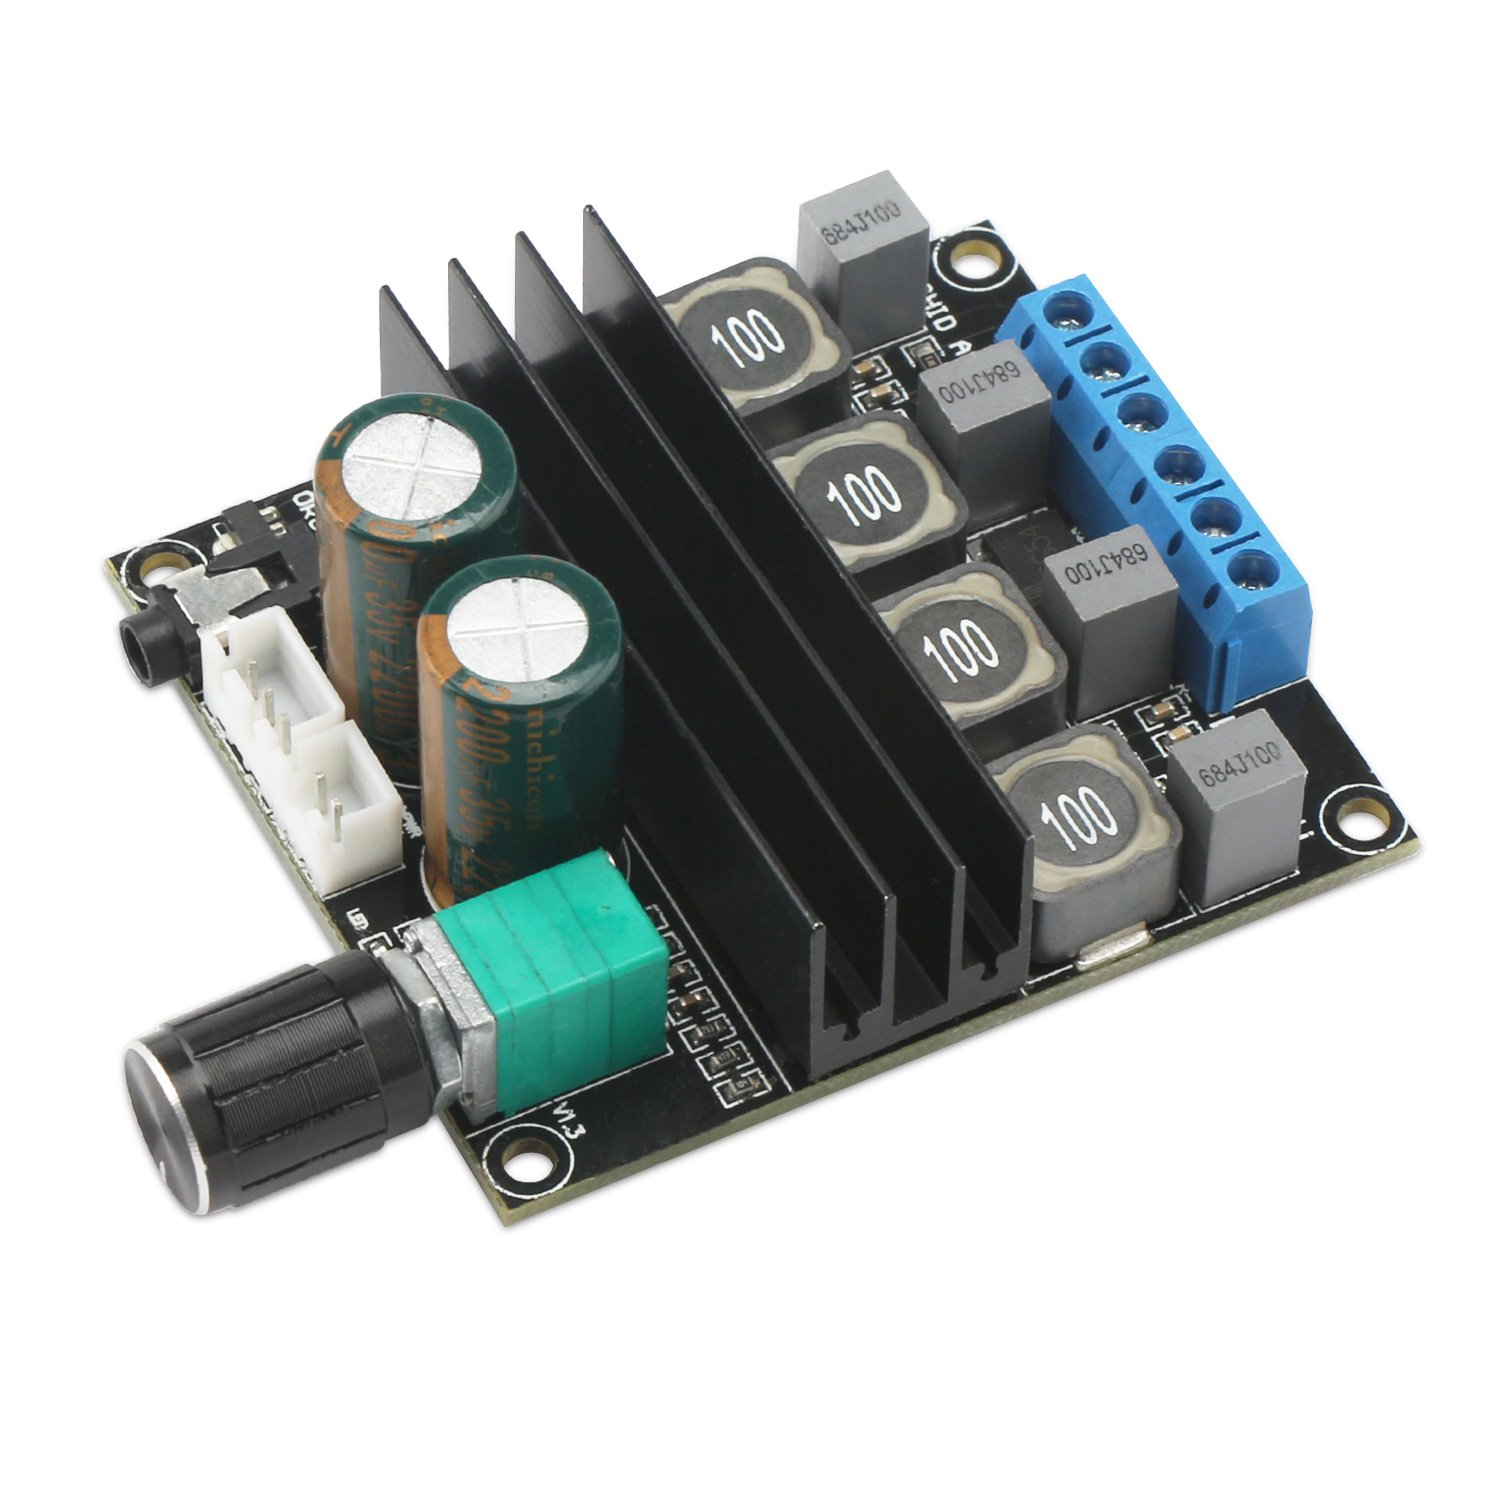 Digital Amplifier Board, DROK HiFi Dual Channel Stereo Audio Amplifier DC10-25V Digital 2.0 Power Amp Board 100W Output with Volume Adjustment Knob by DROK